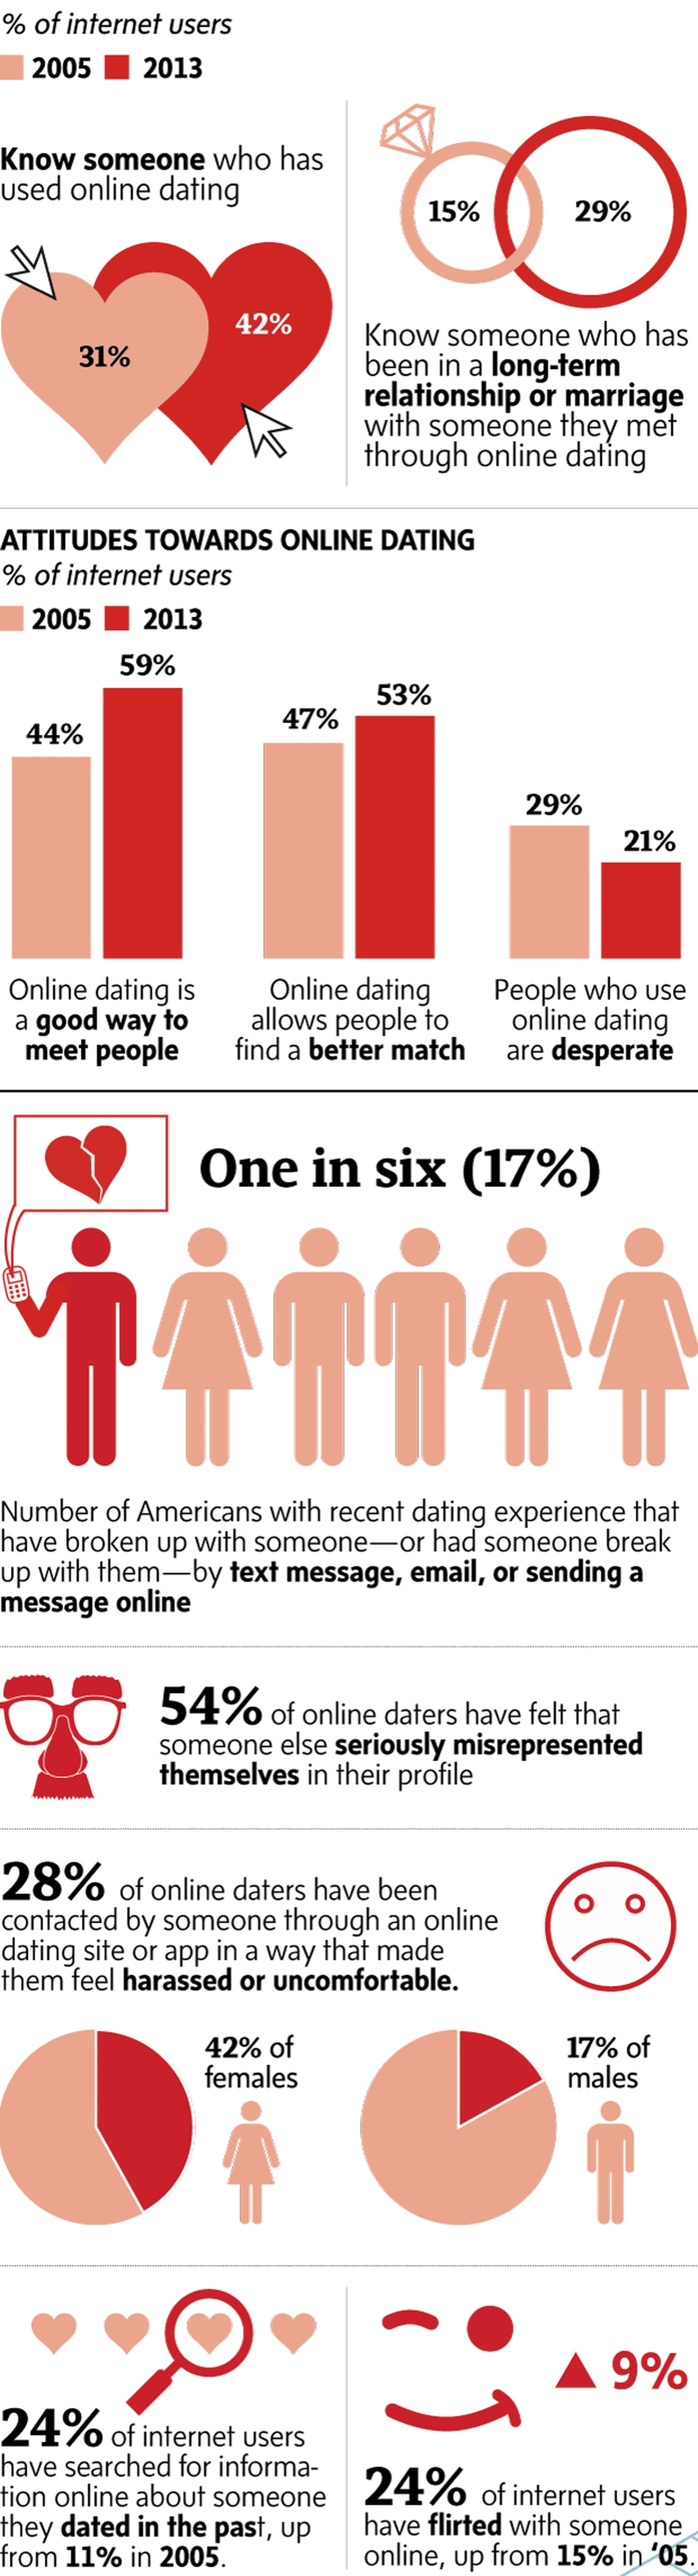 How did online dating become popular